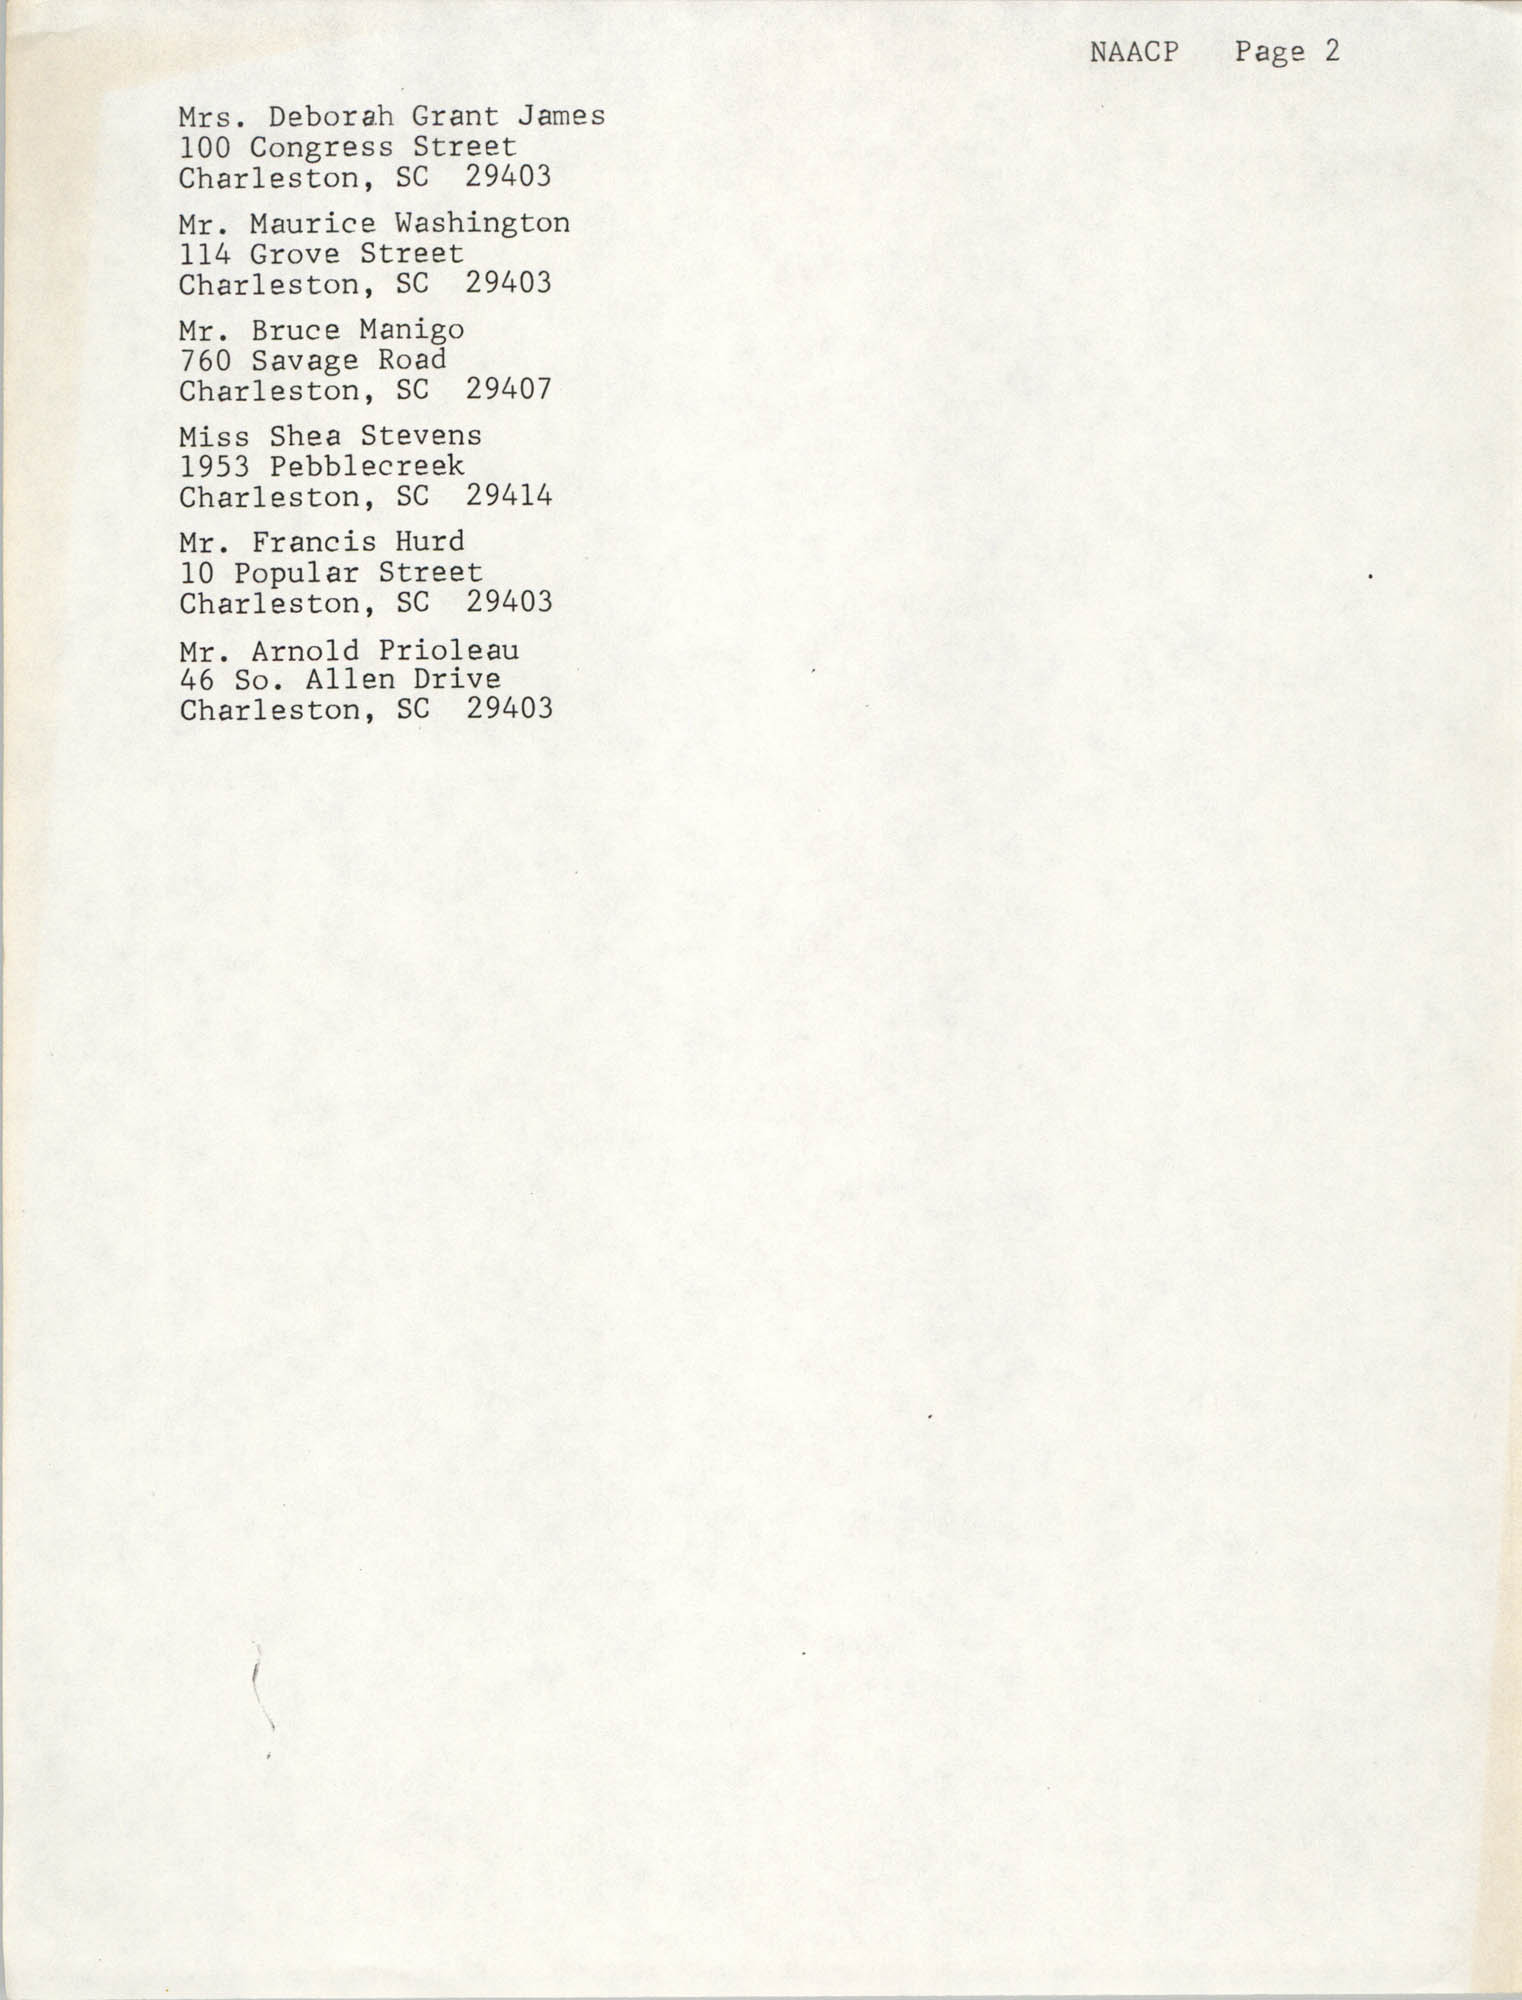 List of Names and Addresses